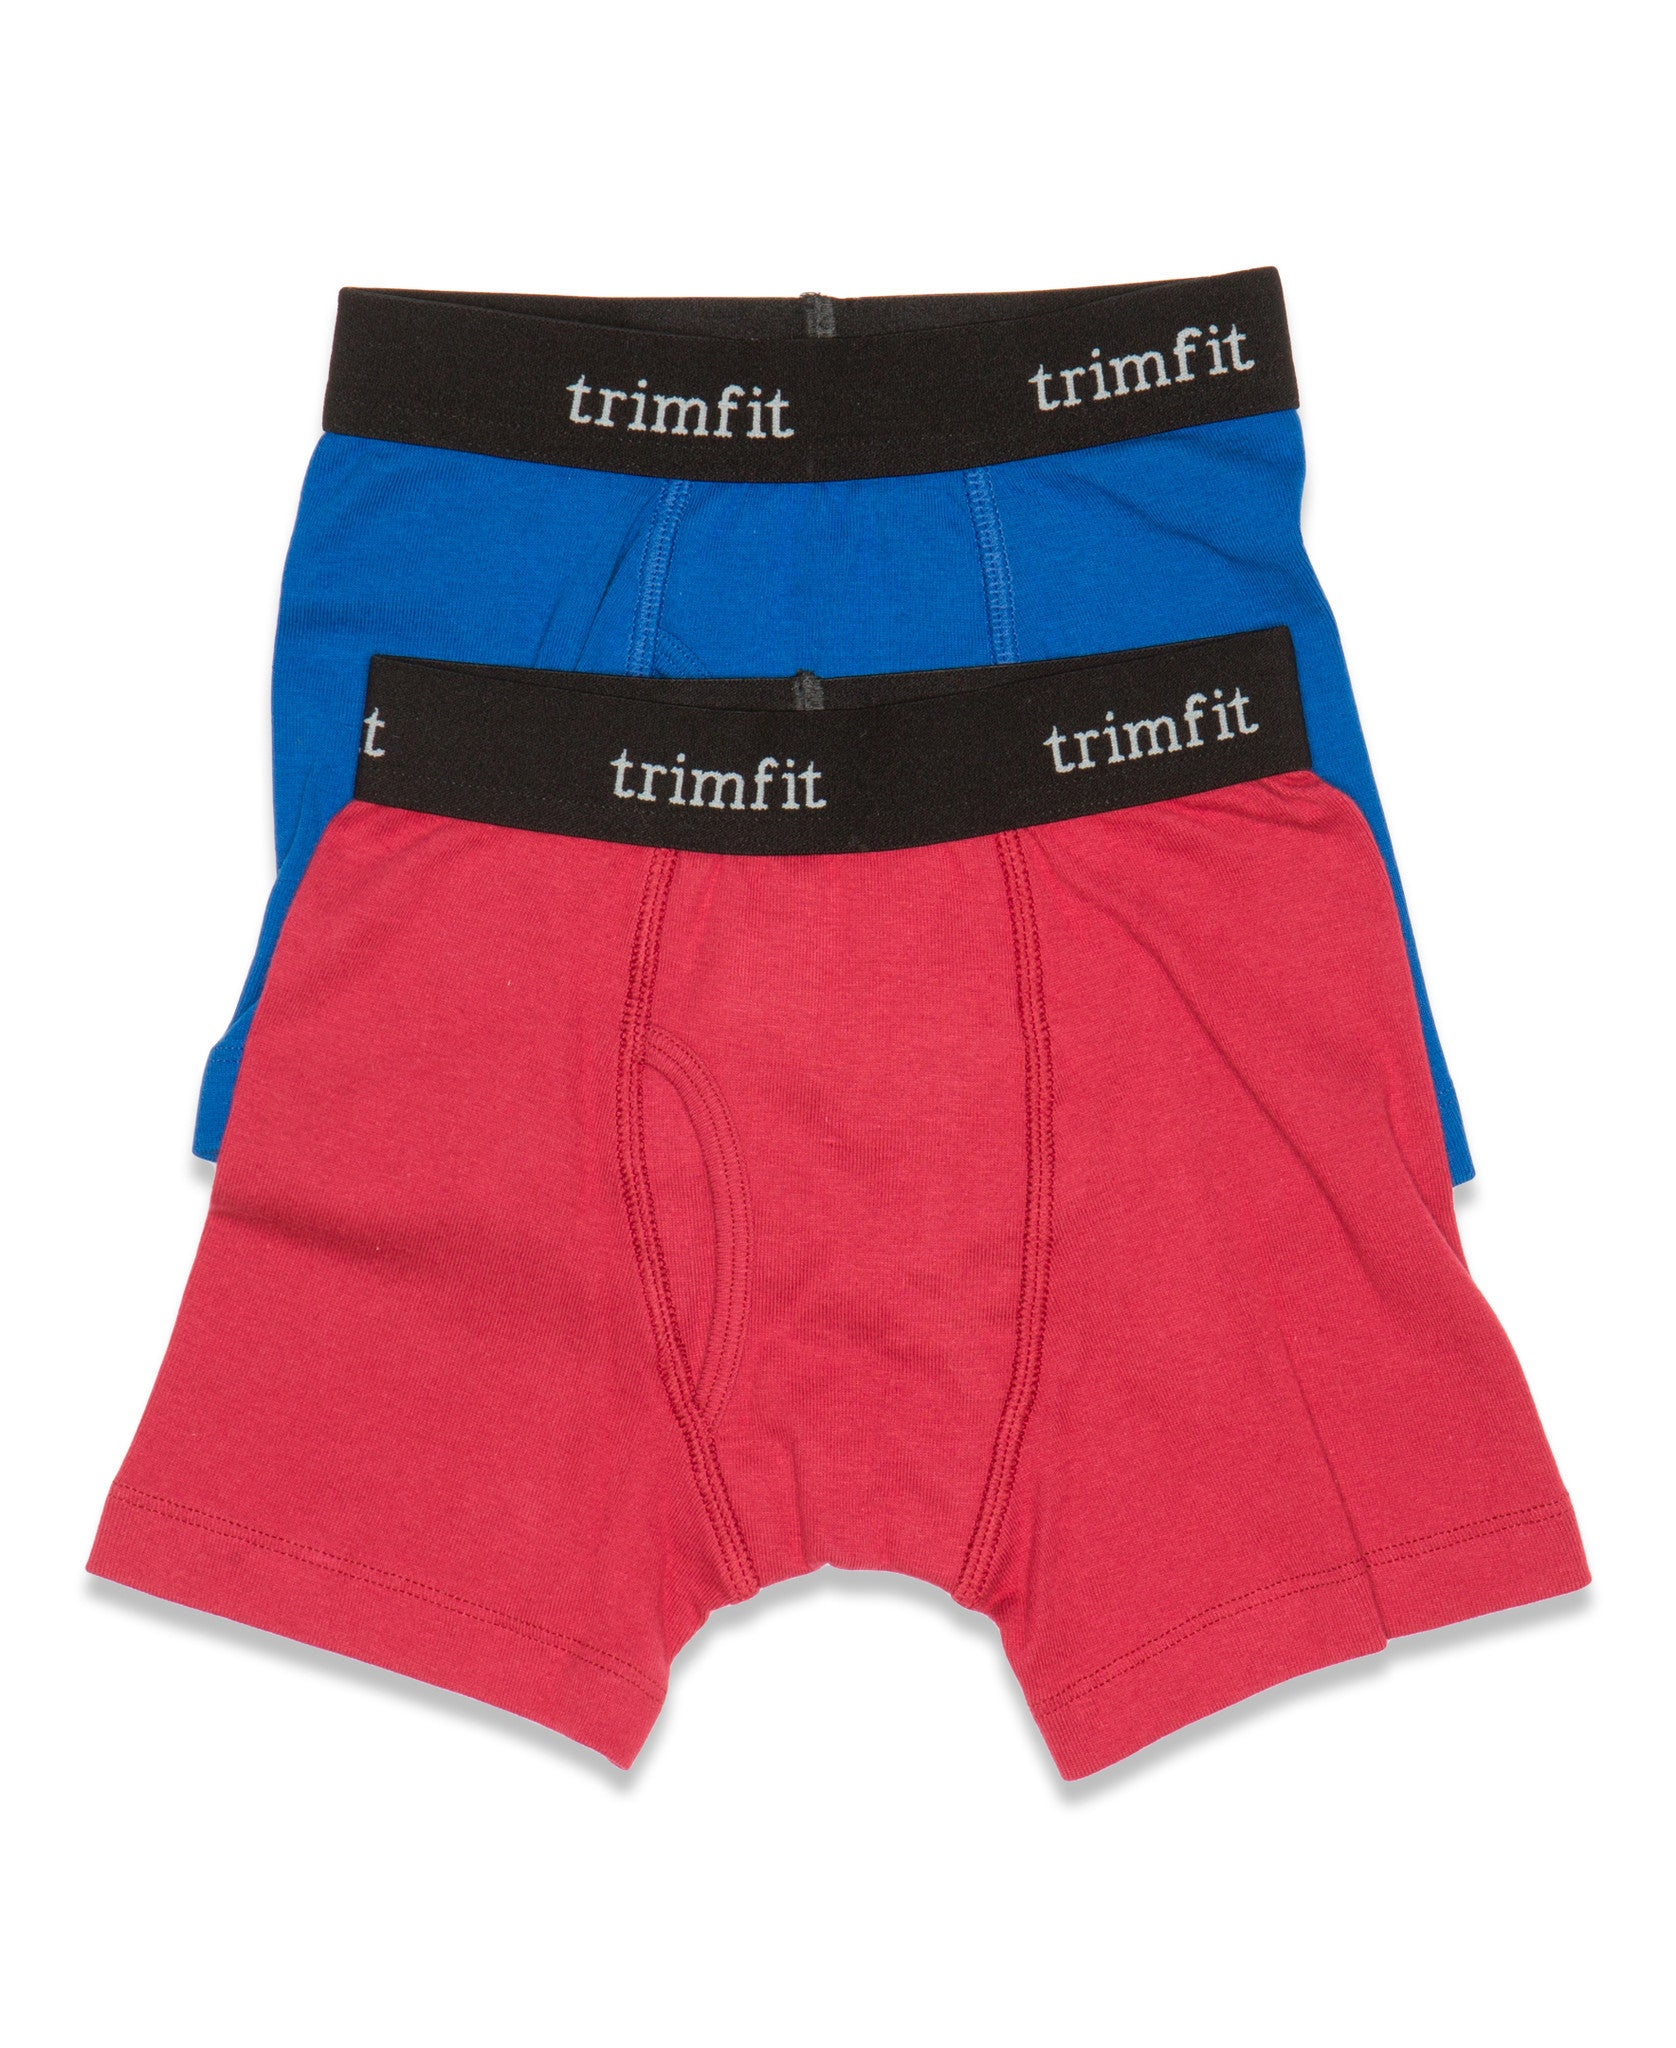 2-Pack 100% Combed Cotton Boxer Briefs